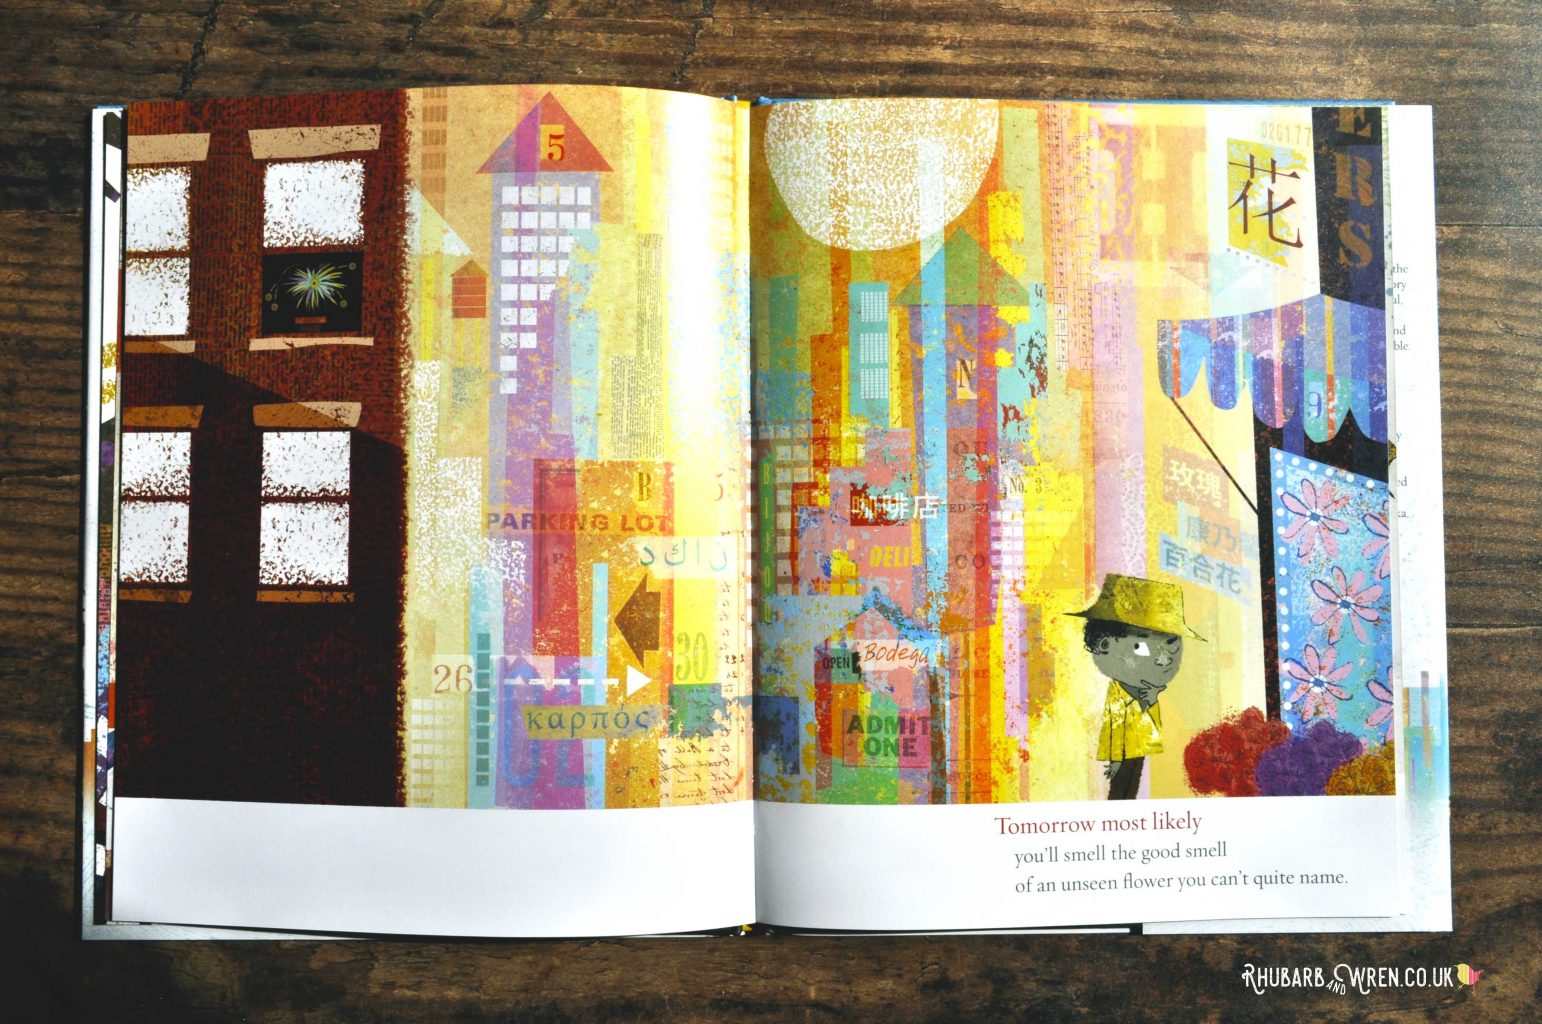 A boy walks through a colourful city in the book 'Tomorrow Most Likely' by Dave Eggers and Lane Smith